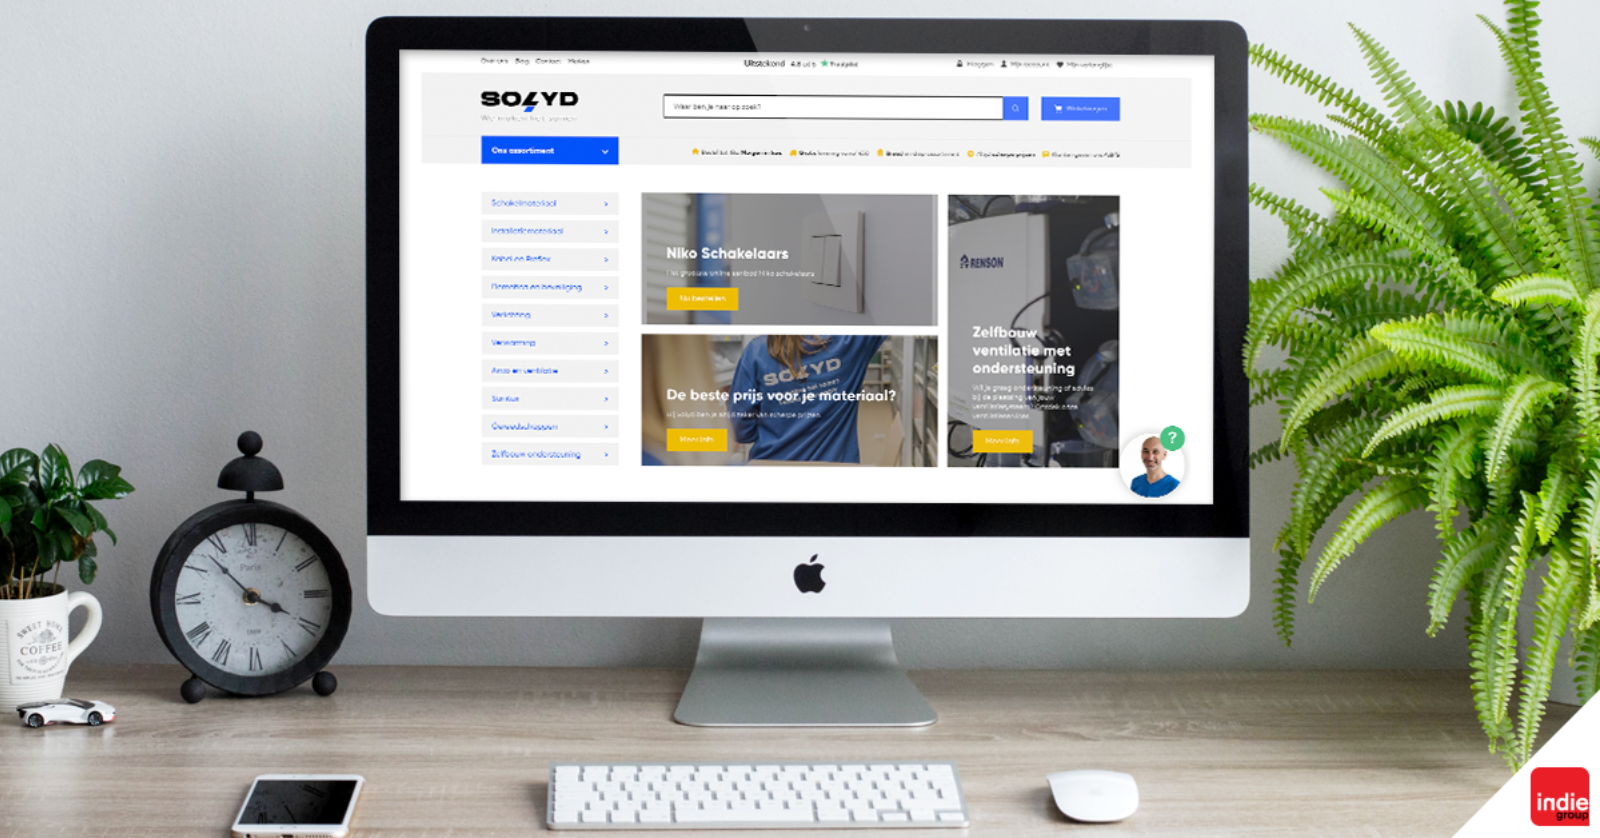 Website solyd